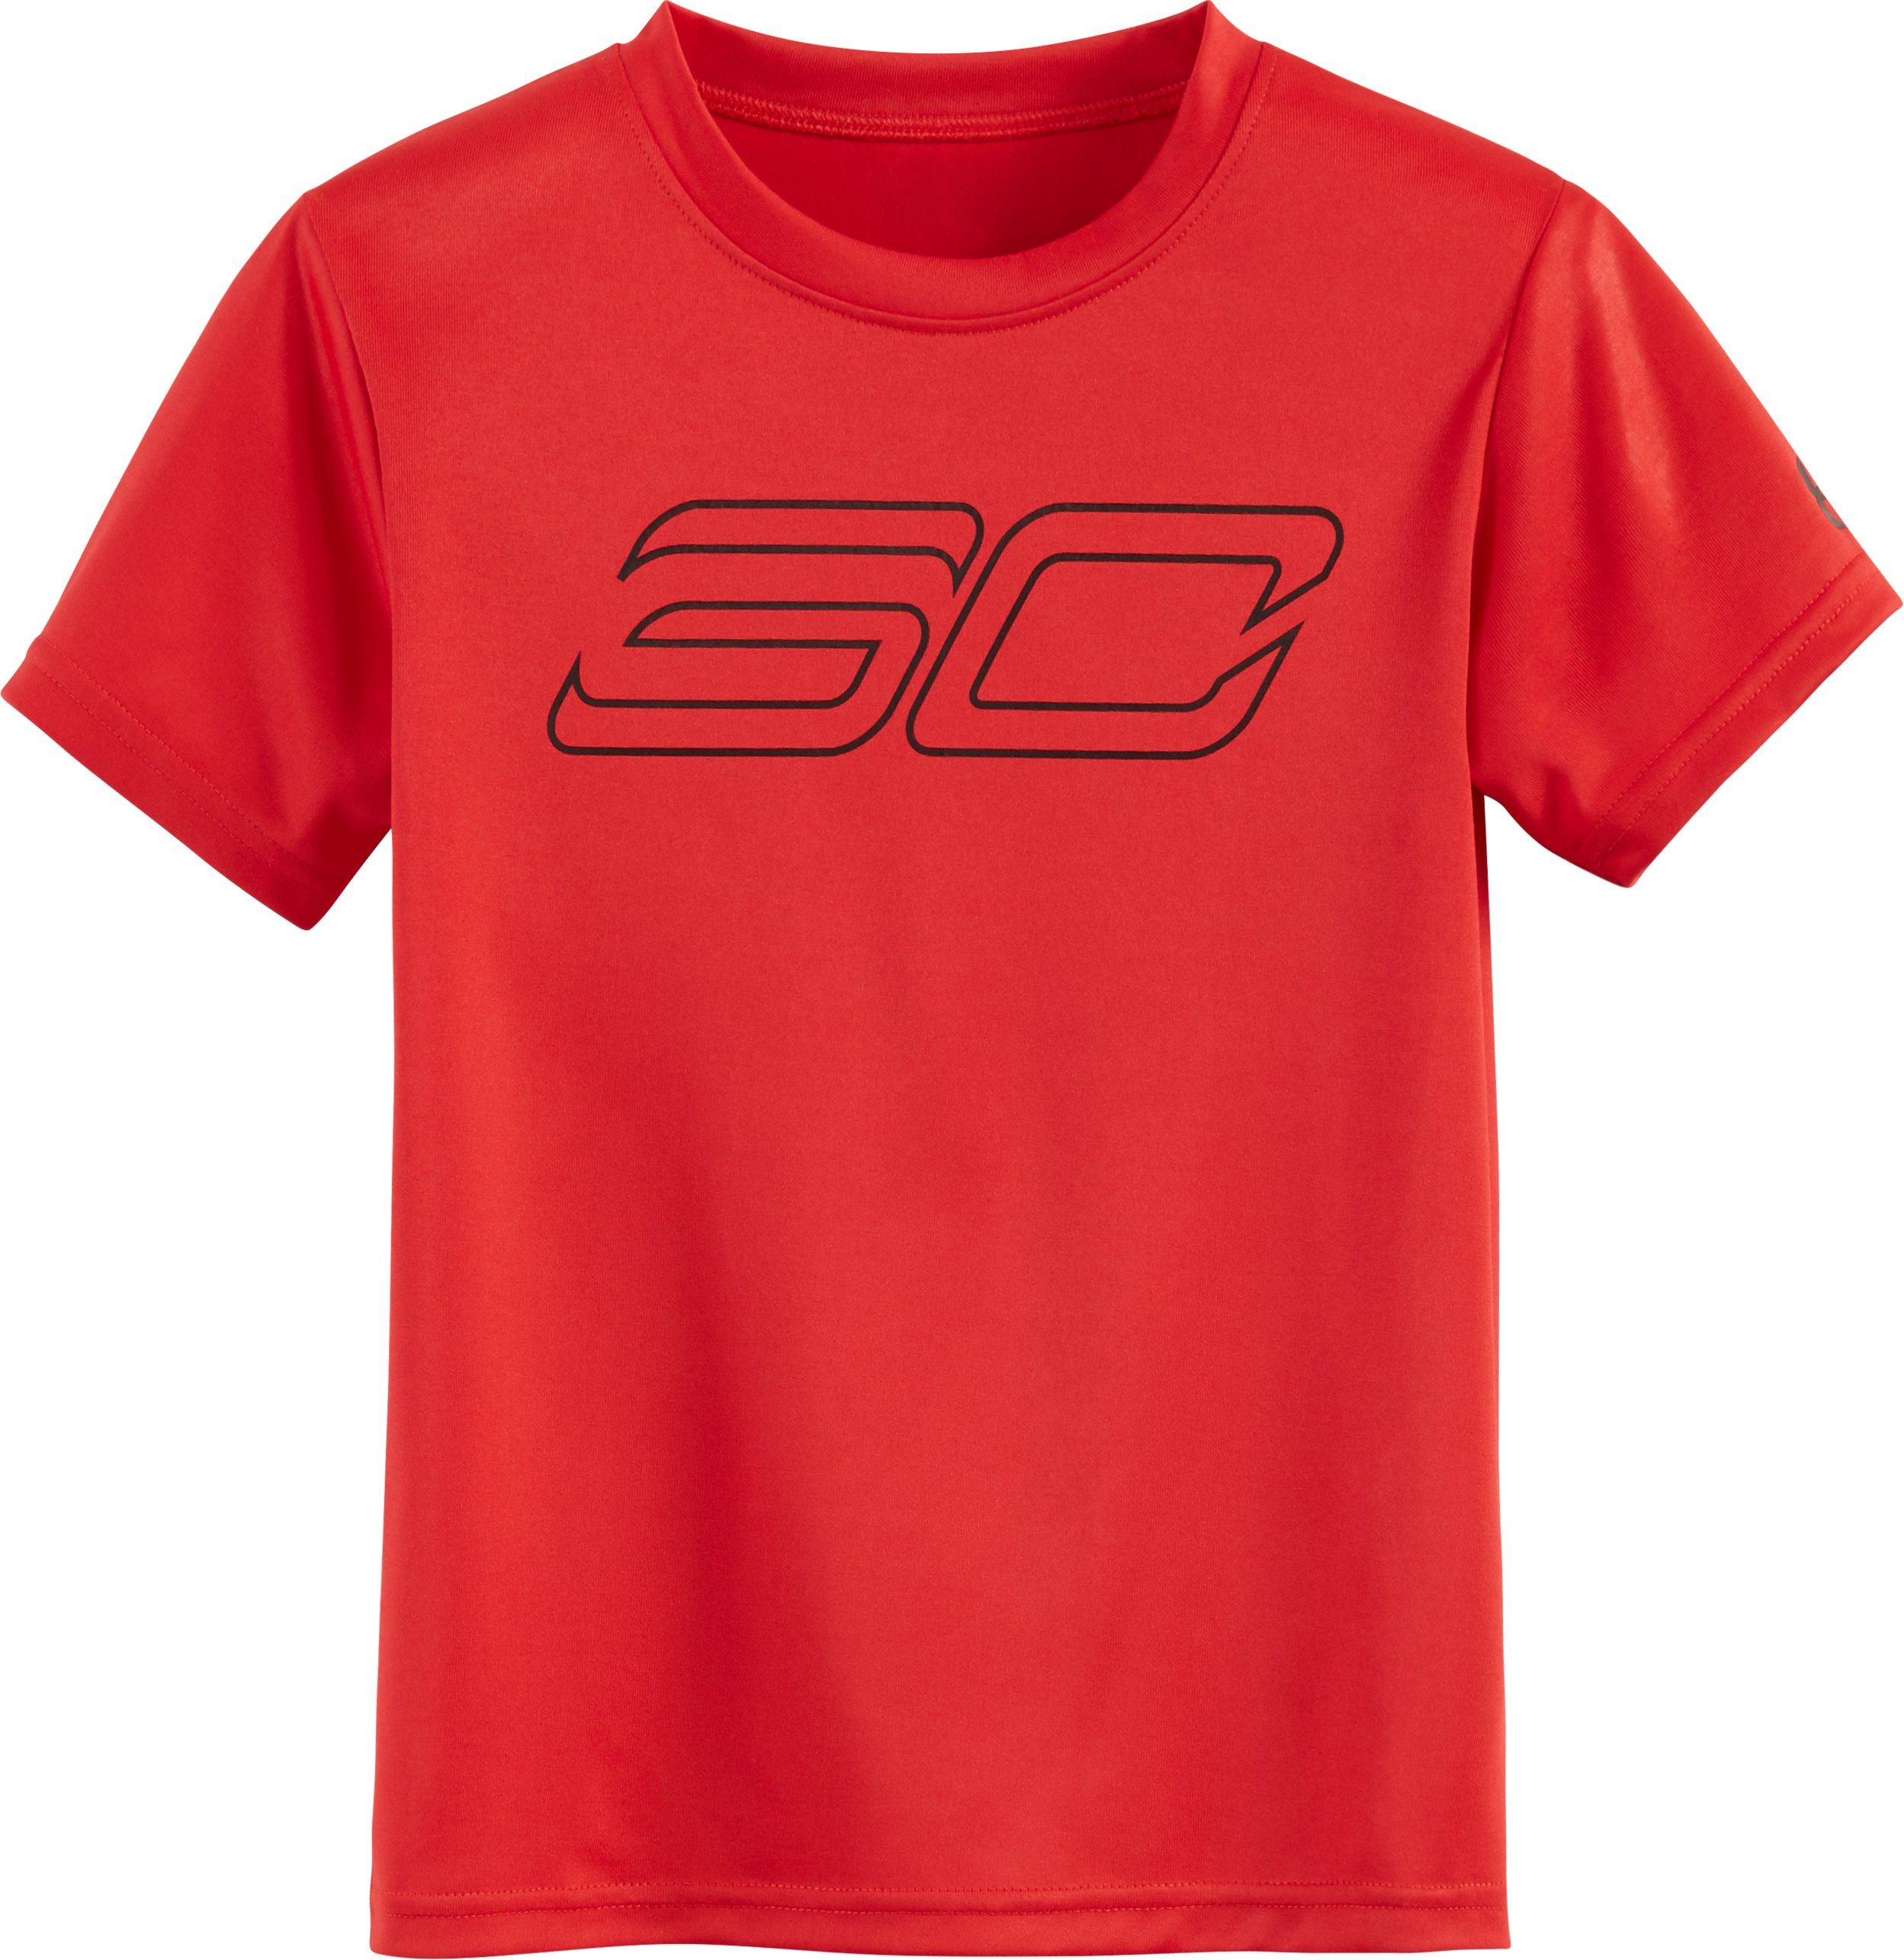 Boys' Pre-School SC30 Logo Short Sleeve Shirt, Red